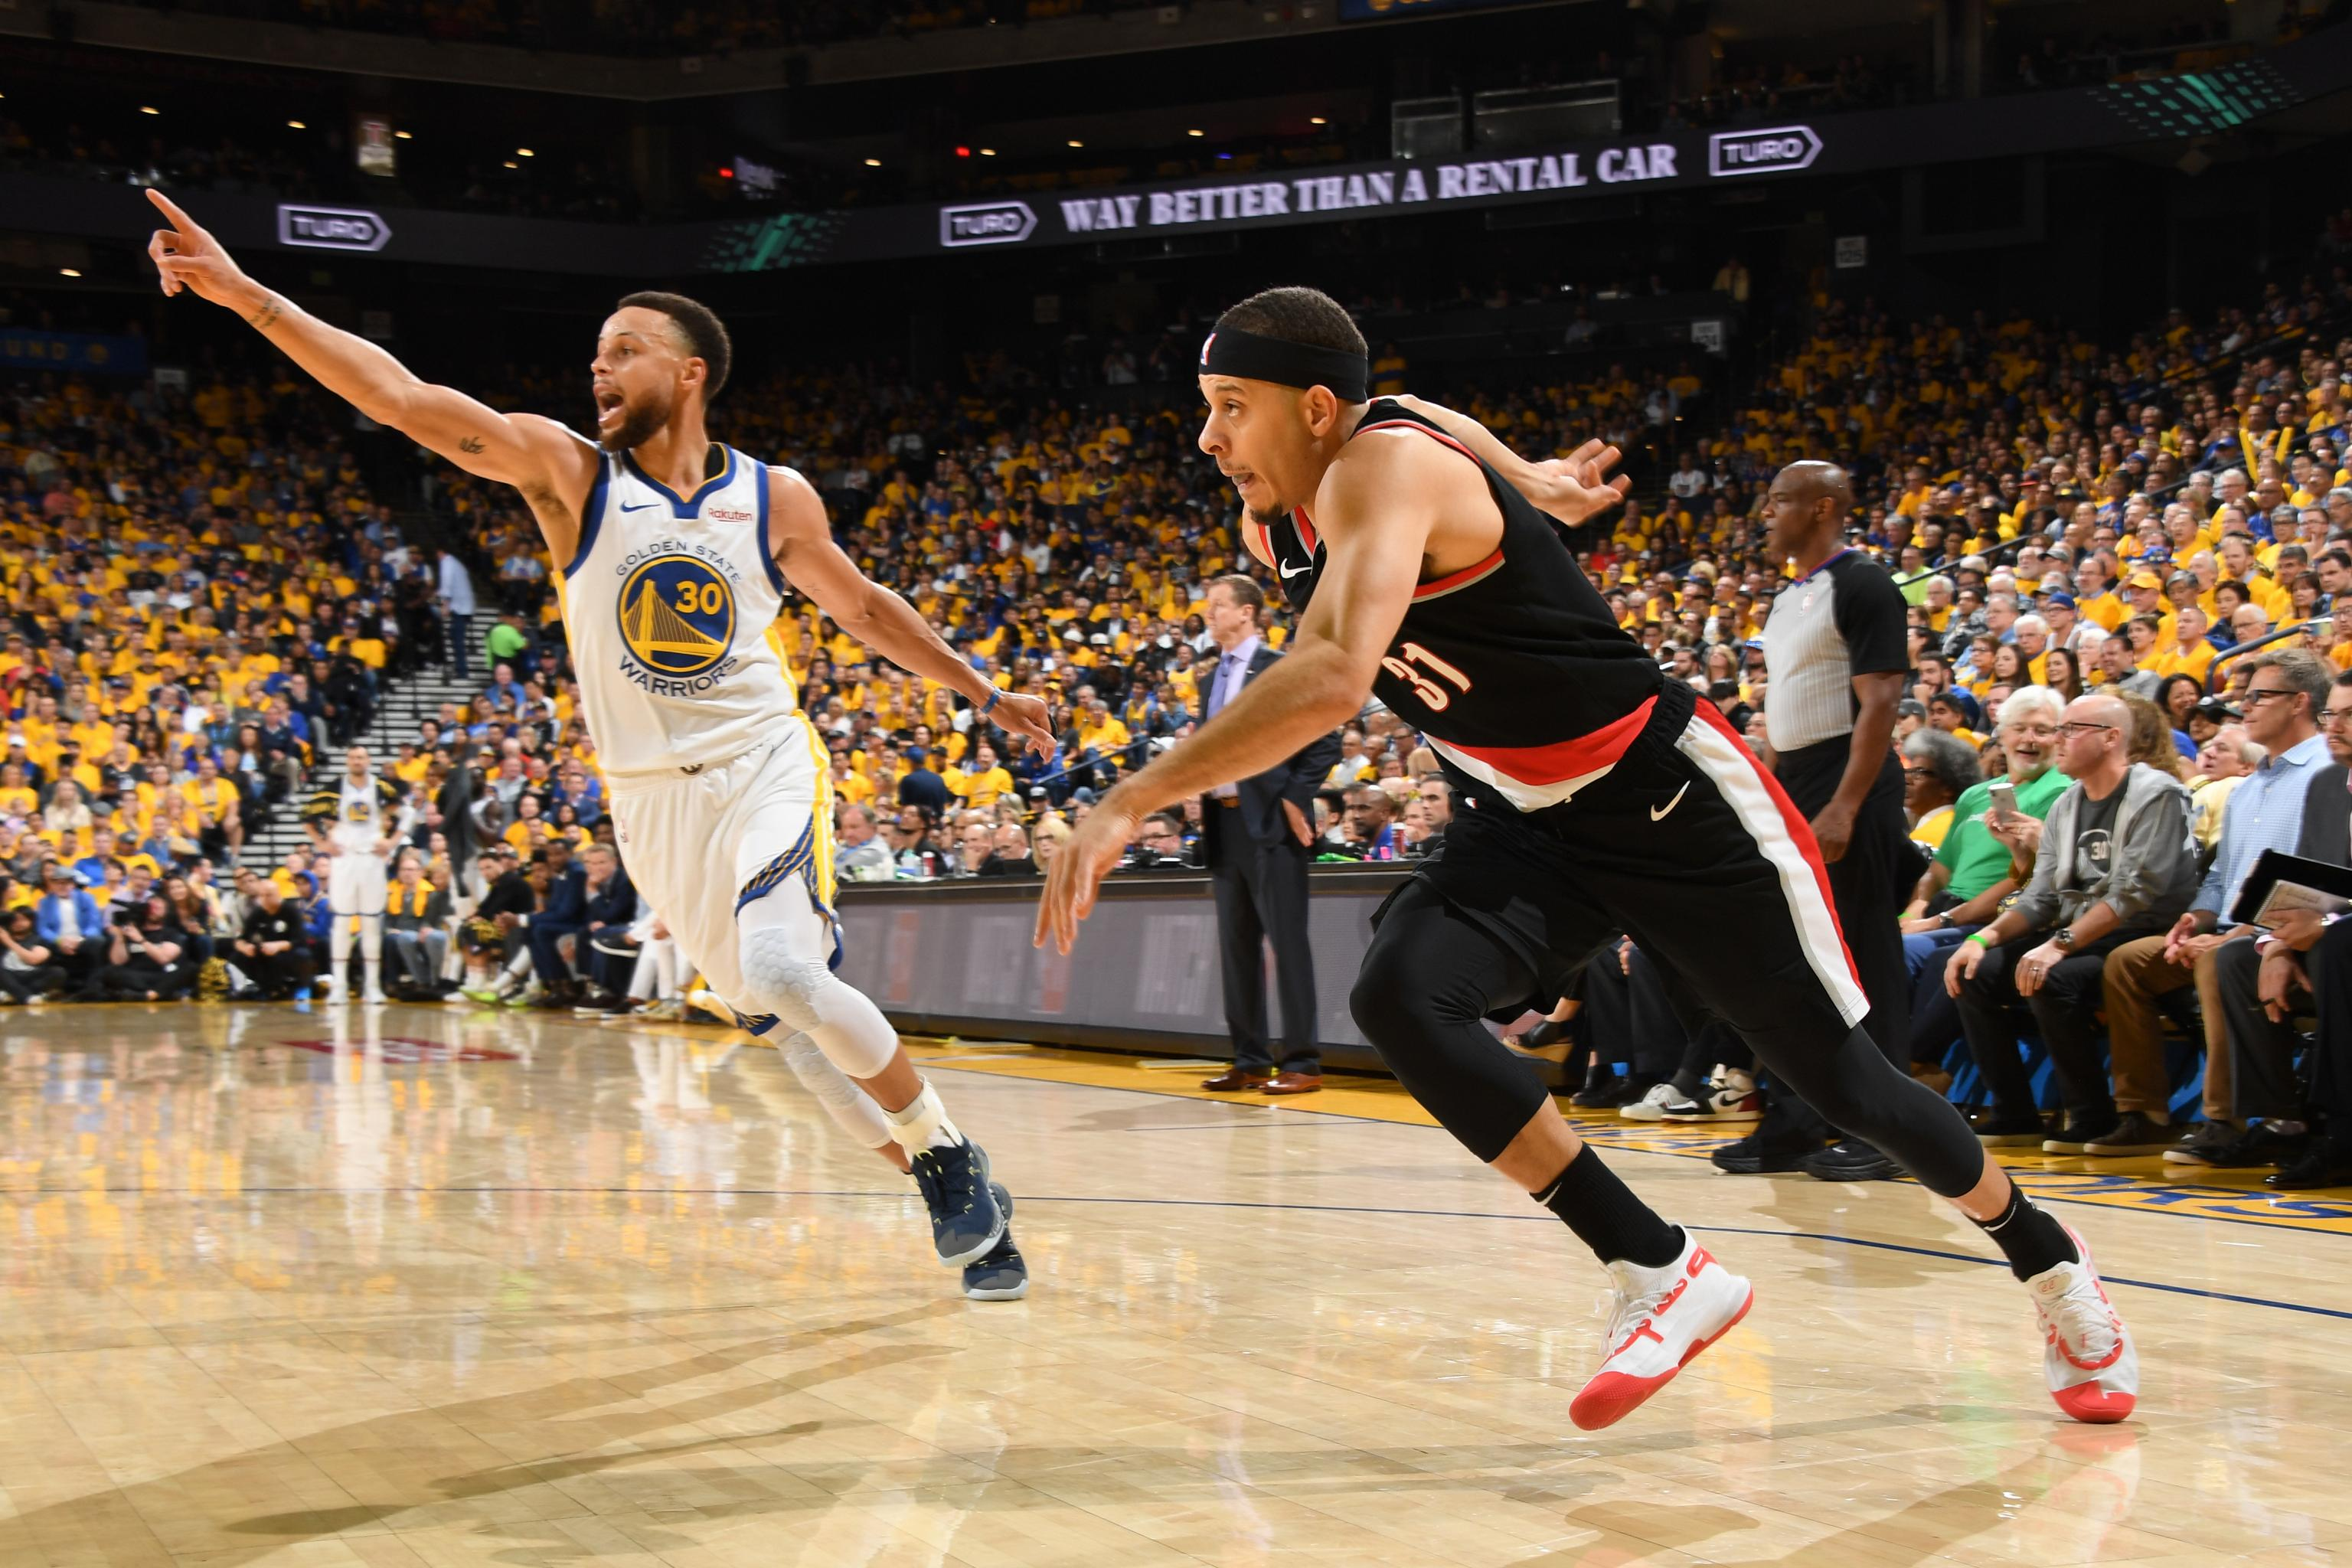 finest selection 31f9e b13e5 Steph Curry: 'Weird' Seeing Mom Sonya Cheering for Him in ...